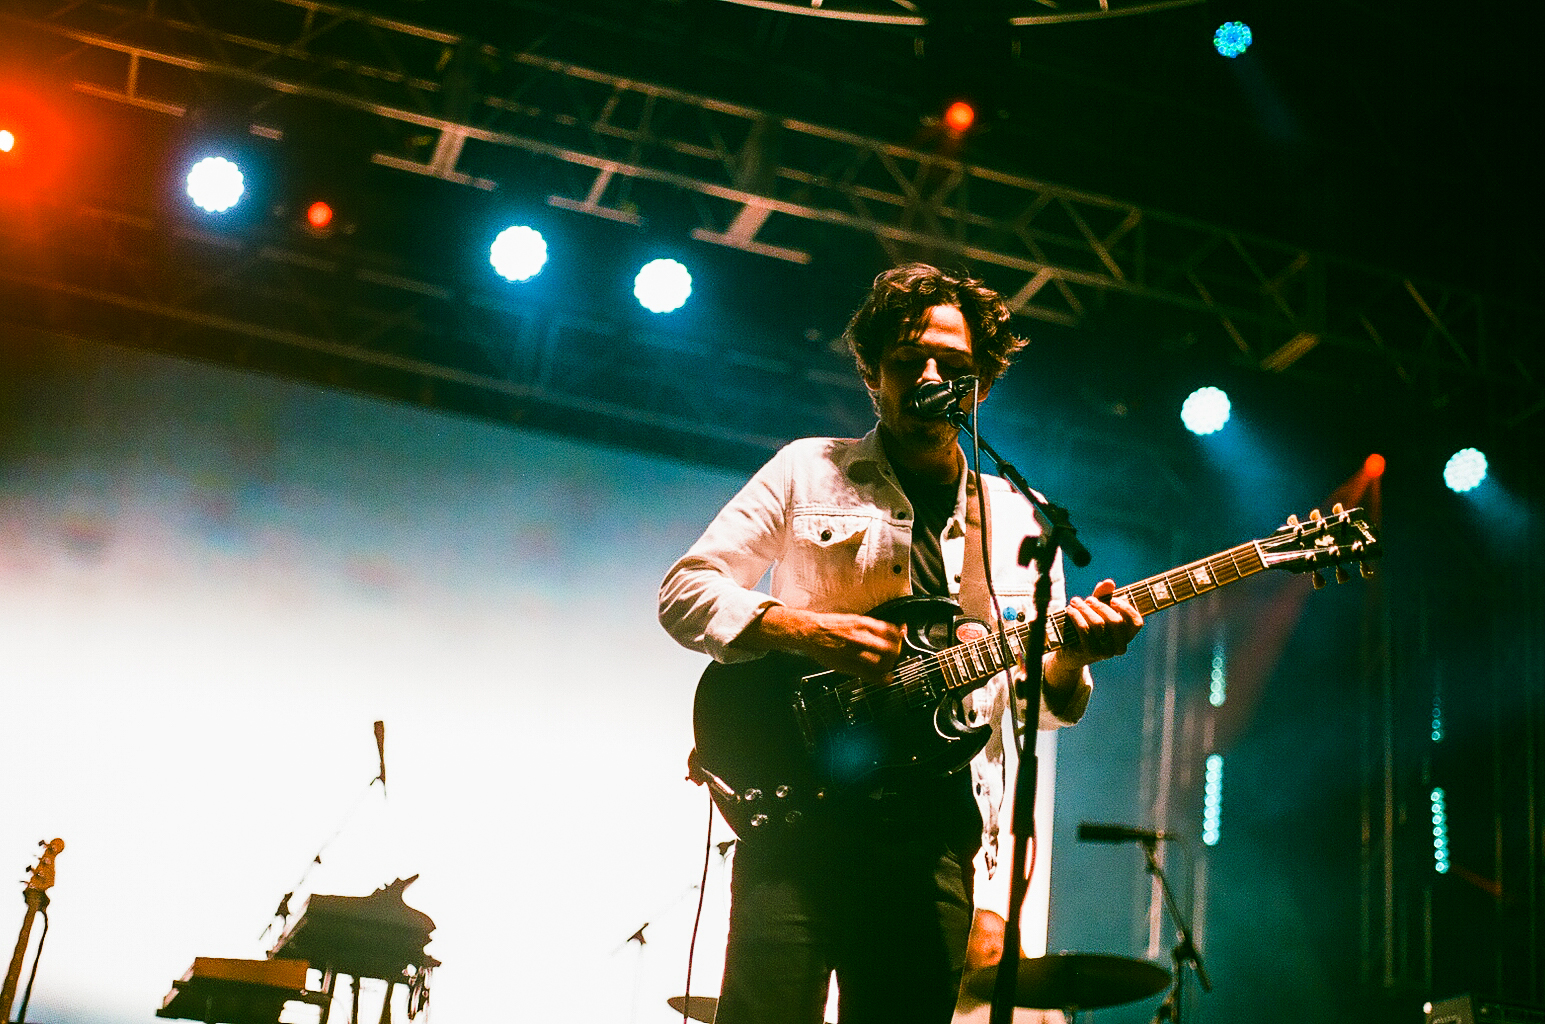 local-natives-atmf-2018-35mm-4.jpg